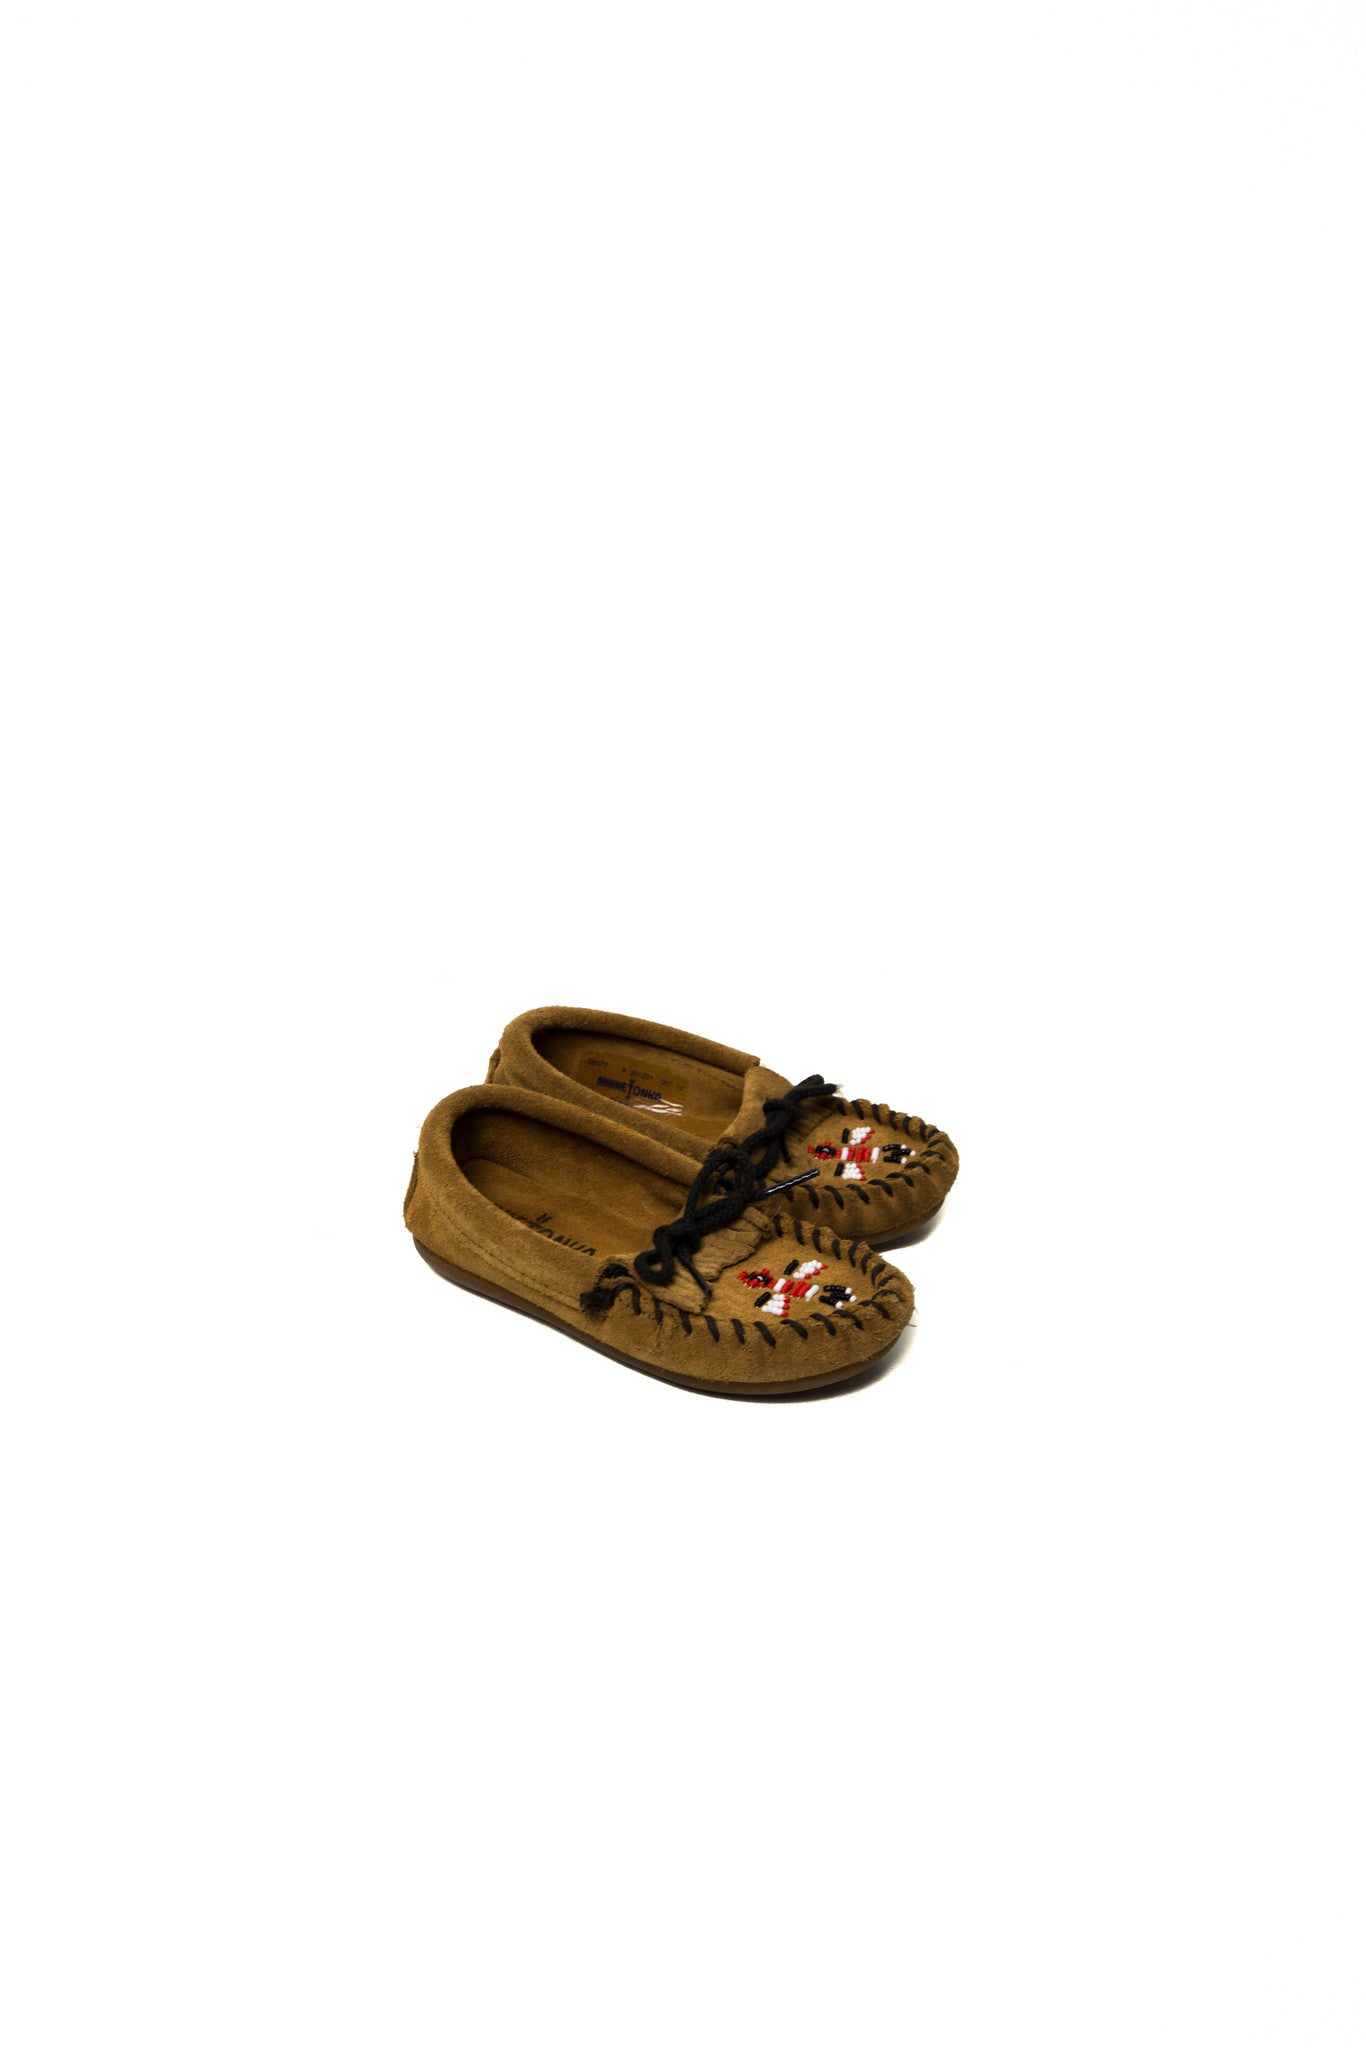 10002522 Minnetonka Kids~Shoes 3T (US 9) at Retykle